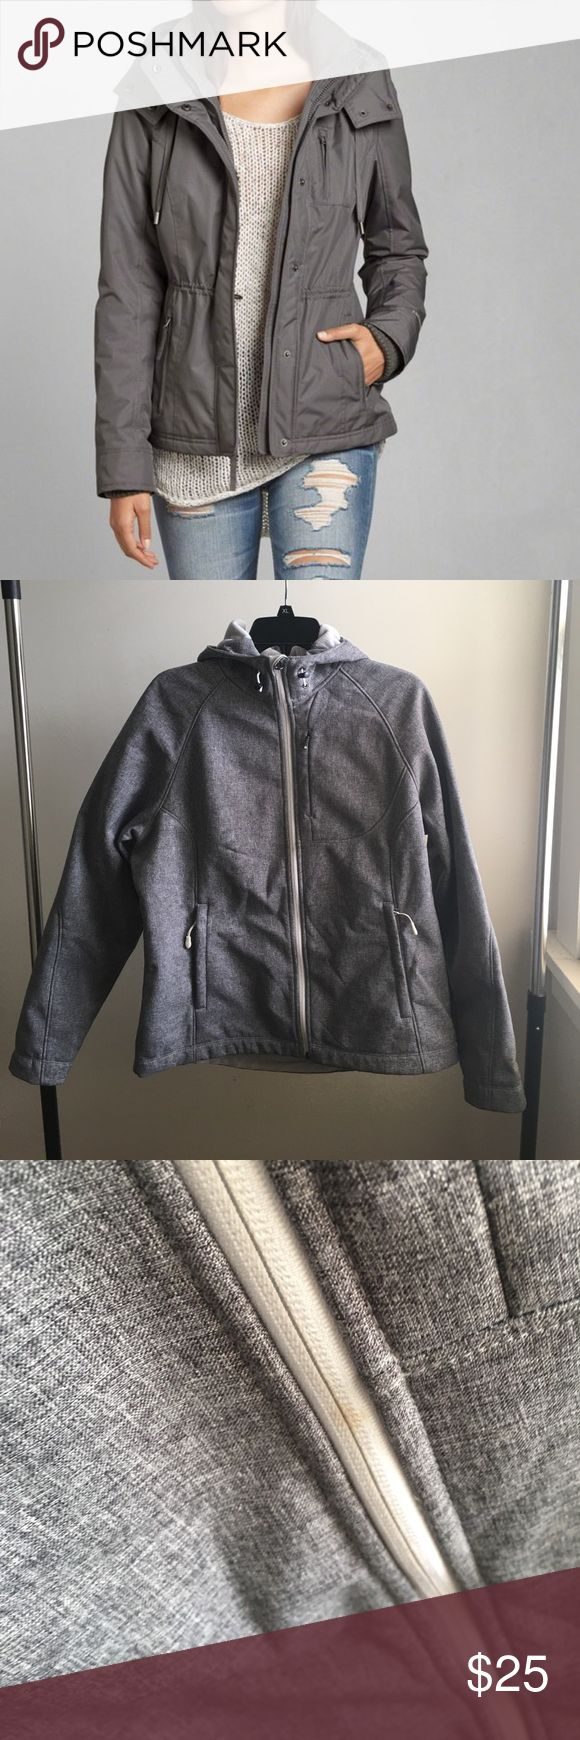 ⭐️ 30% OFF BUNDLES ⭐️ KIRKLAND brand women's outdoor jacket, with warm lining. Has signs of wear see photo, some discoloration on interior sleeve but may be removed with stain remover. All offers welcomed kirklands Jackets & Coats Utility Jackets